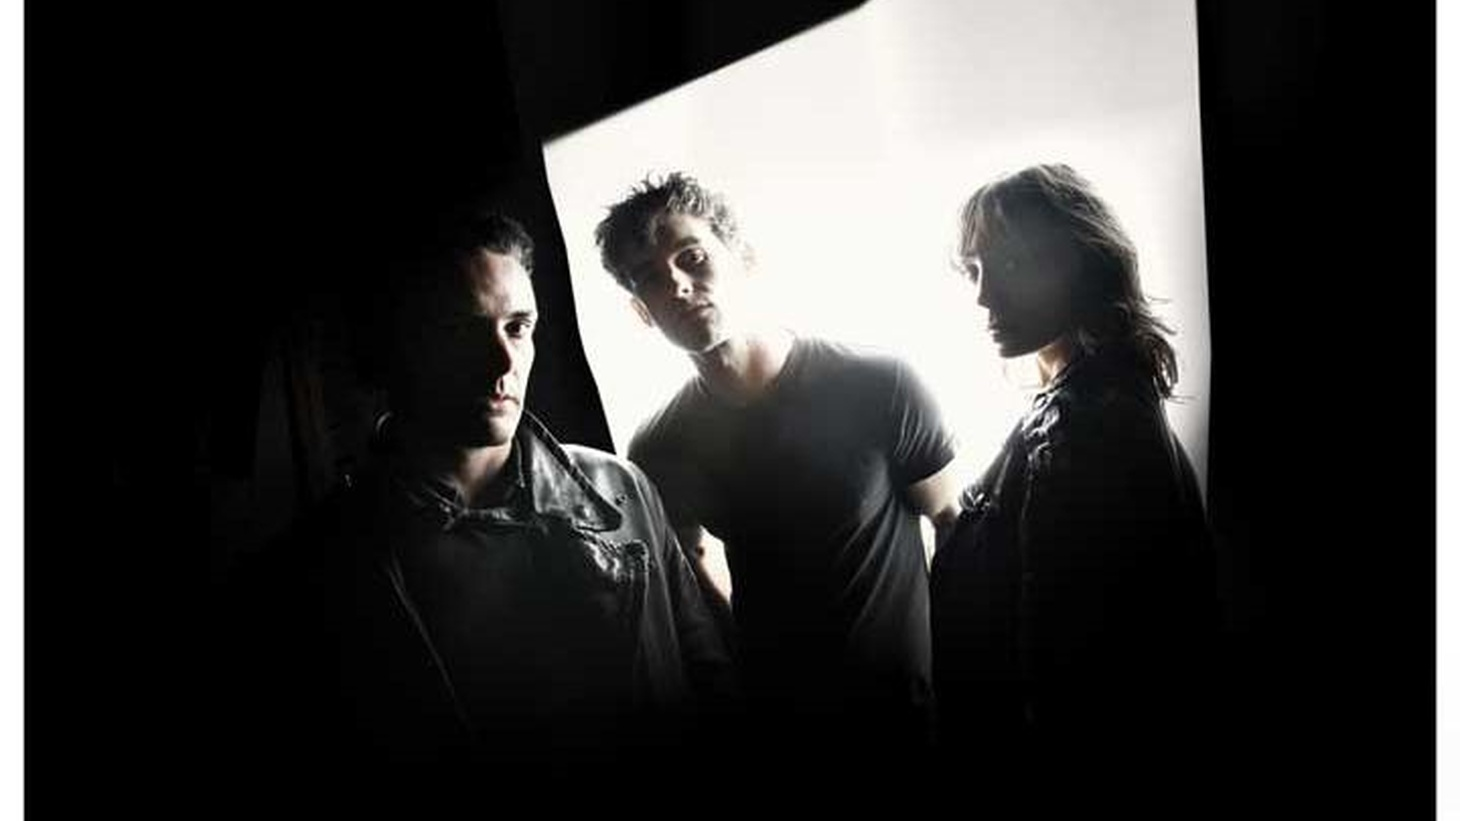 KCRW DJs were early champions of garage rockers Black Rebel Motorcycle Club and our love affair with their music has never faltered. We welcome the band back to our studios to play songs from their new album -- one of their best yet -- on Morning Becomes Eclectic at 11:15am.